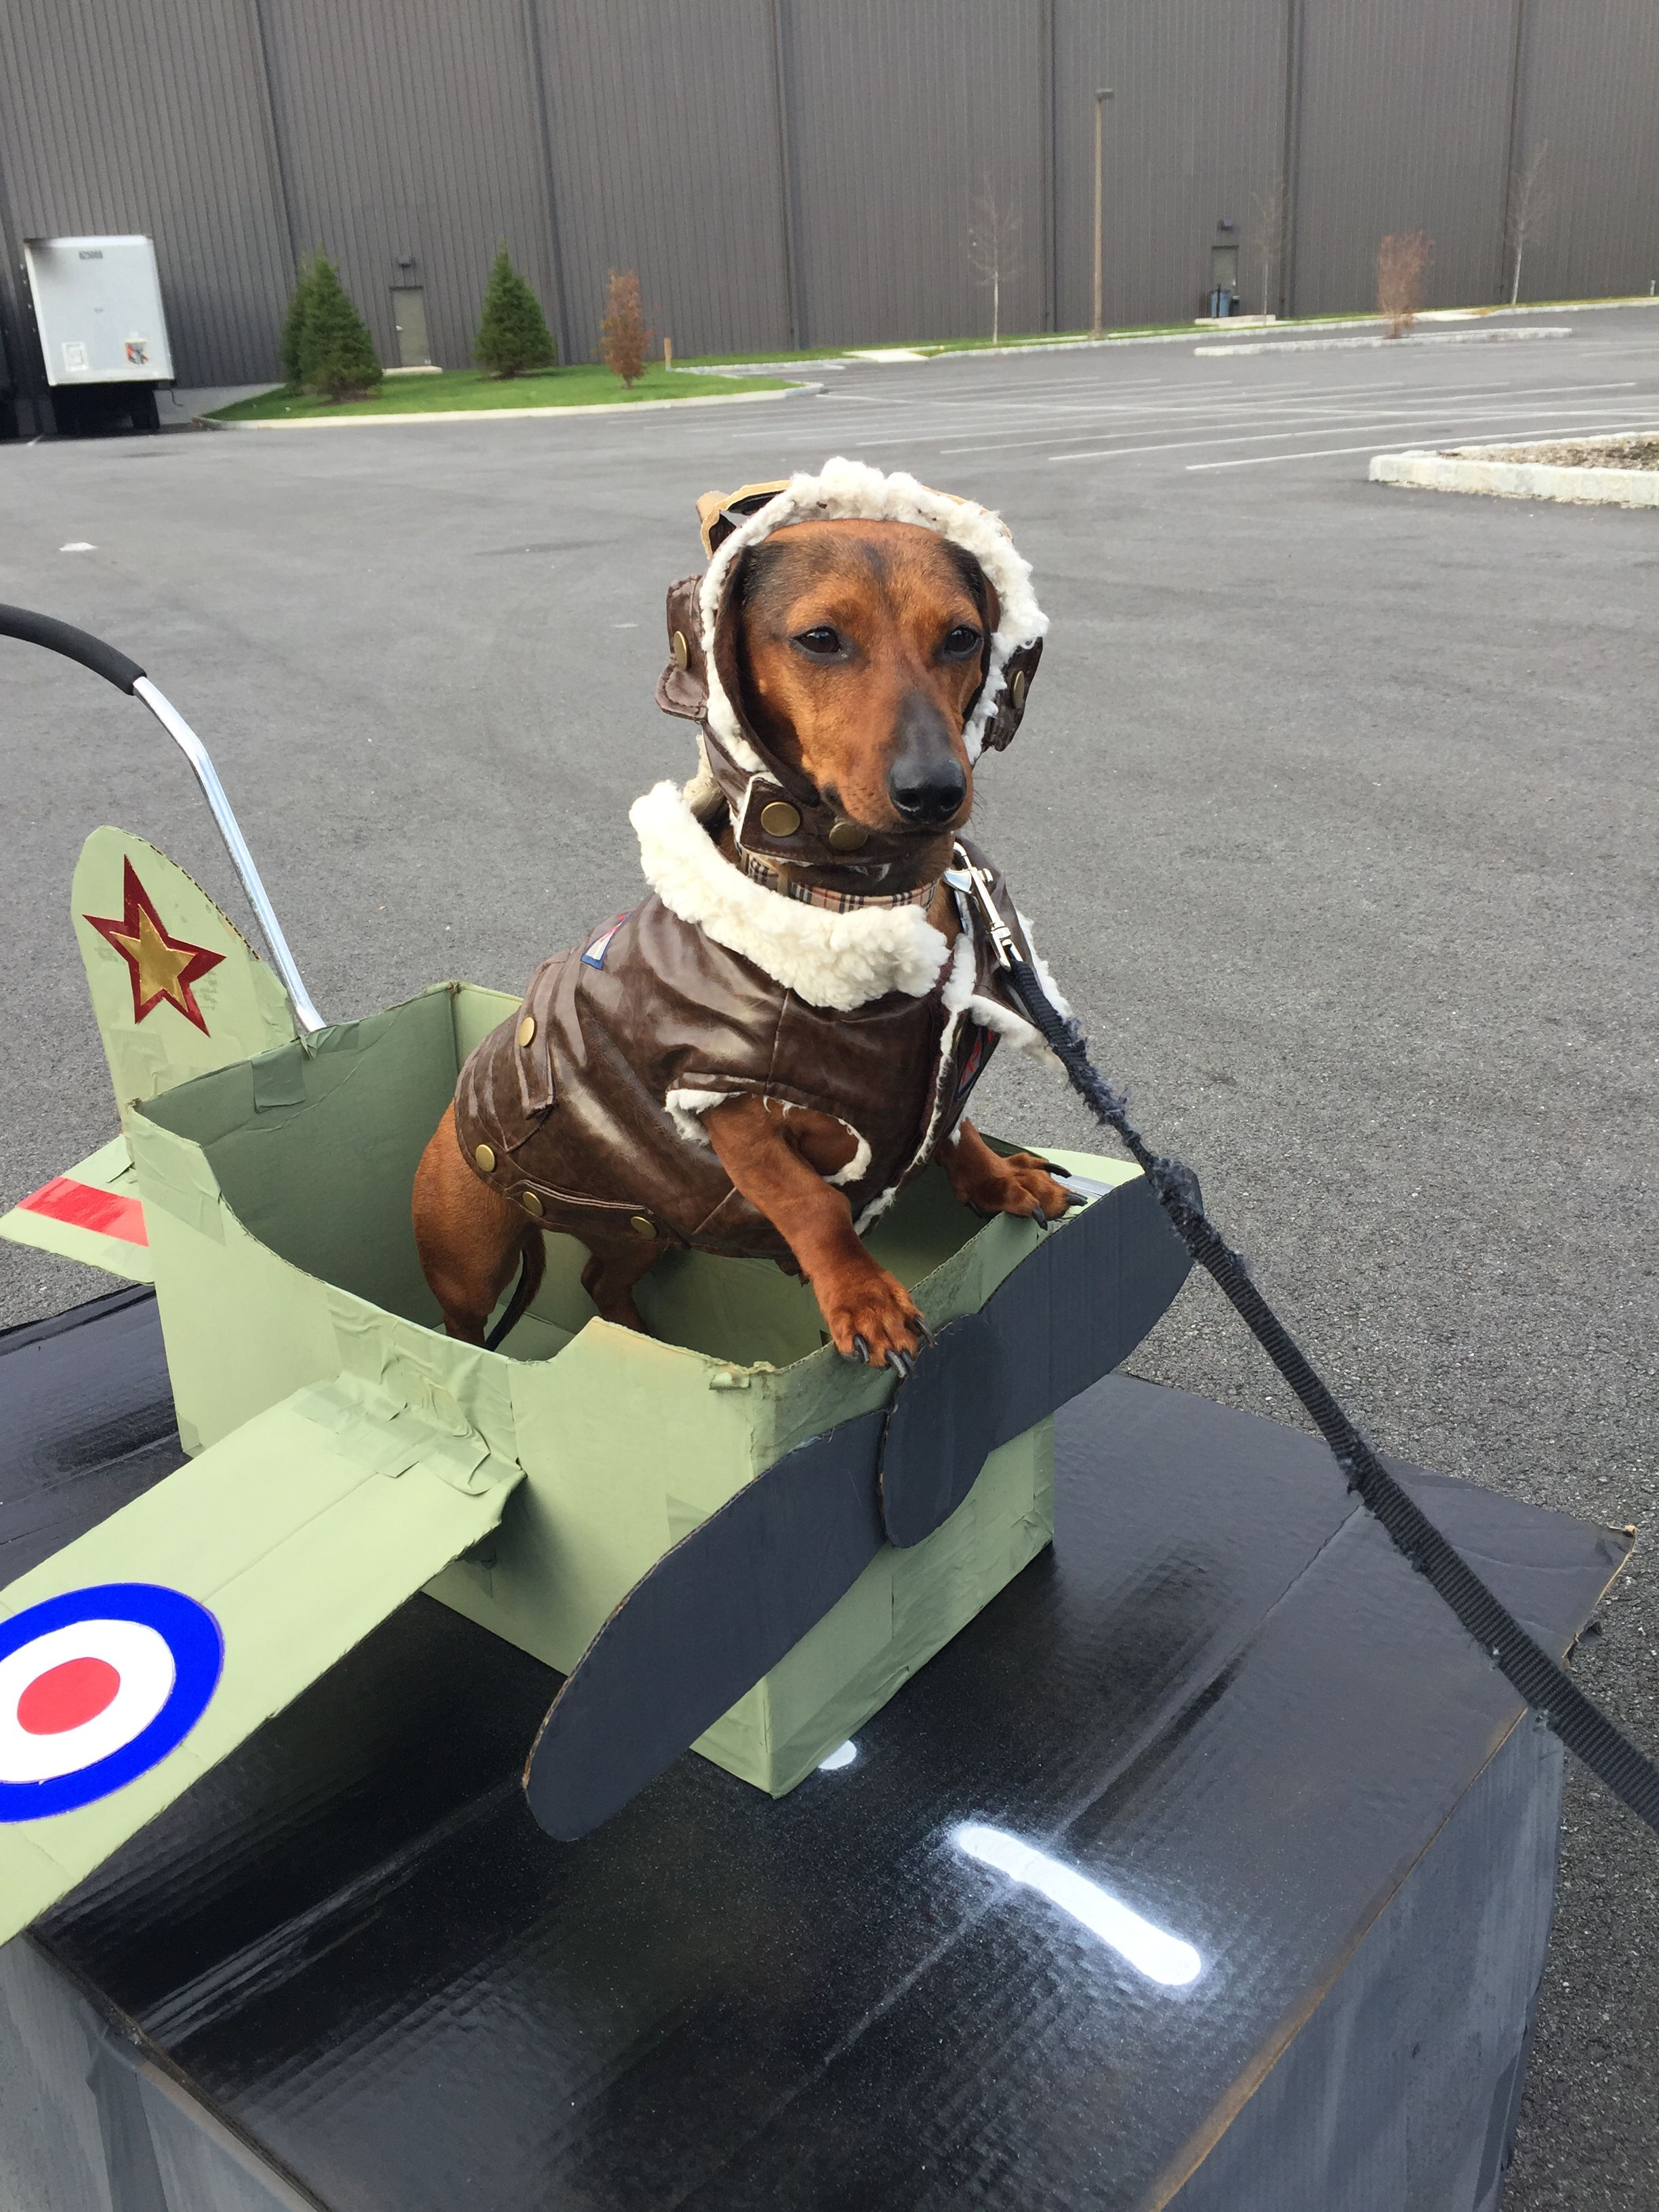 Aviator Dog Costume With Airplane Made Out Of Cardboard Box